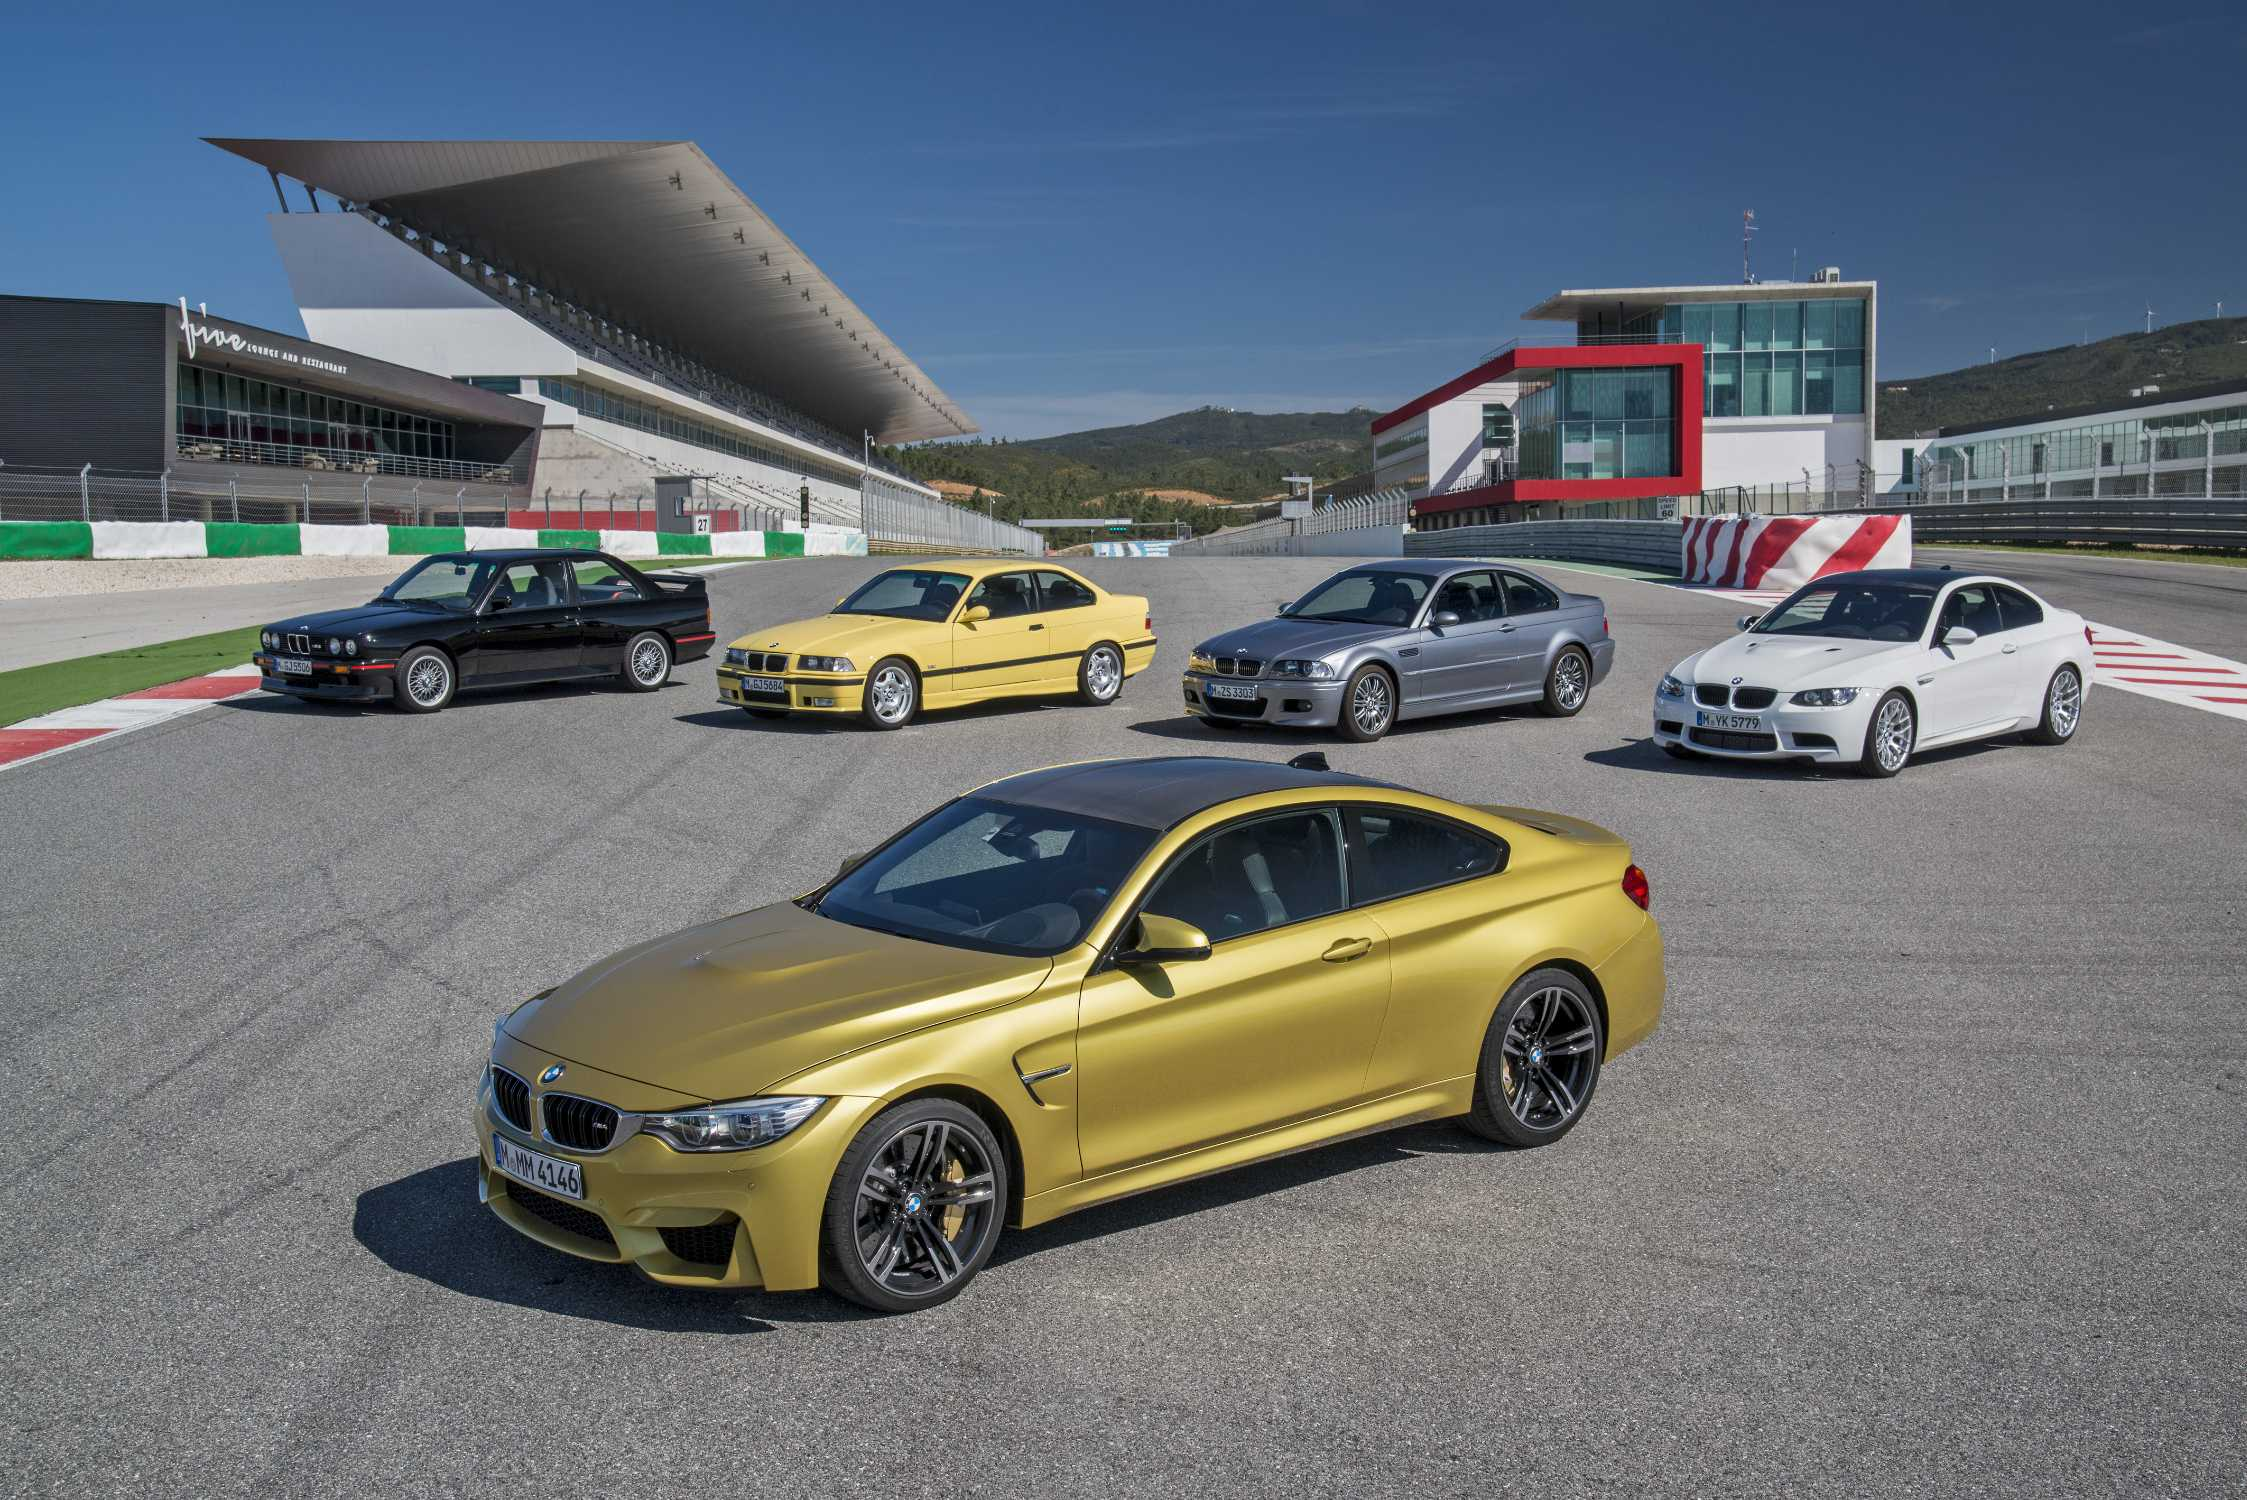 The New Bmw M4 Coupe Bmw M3 Sport Evolution E30 Bmw M3 Coupe